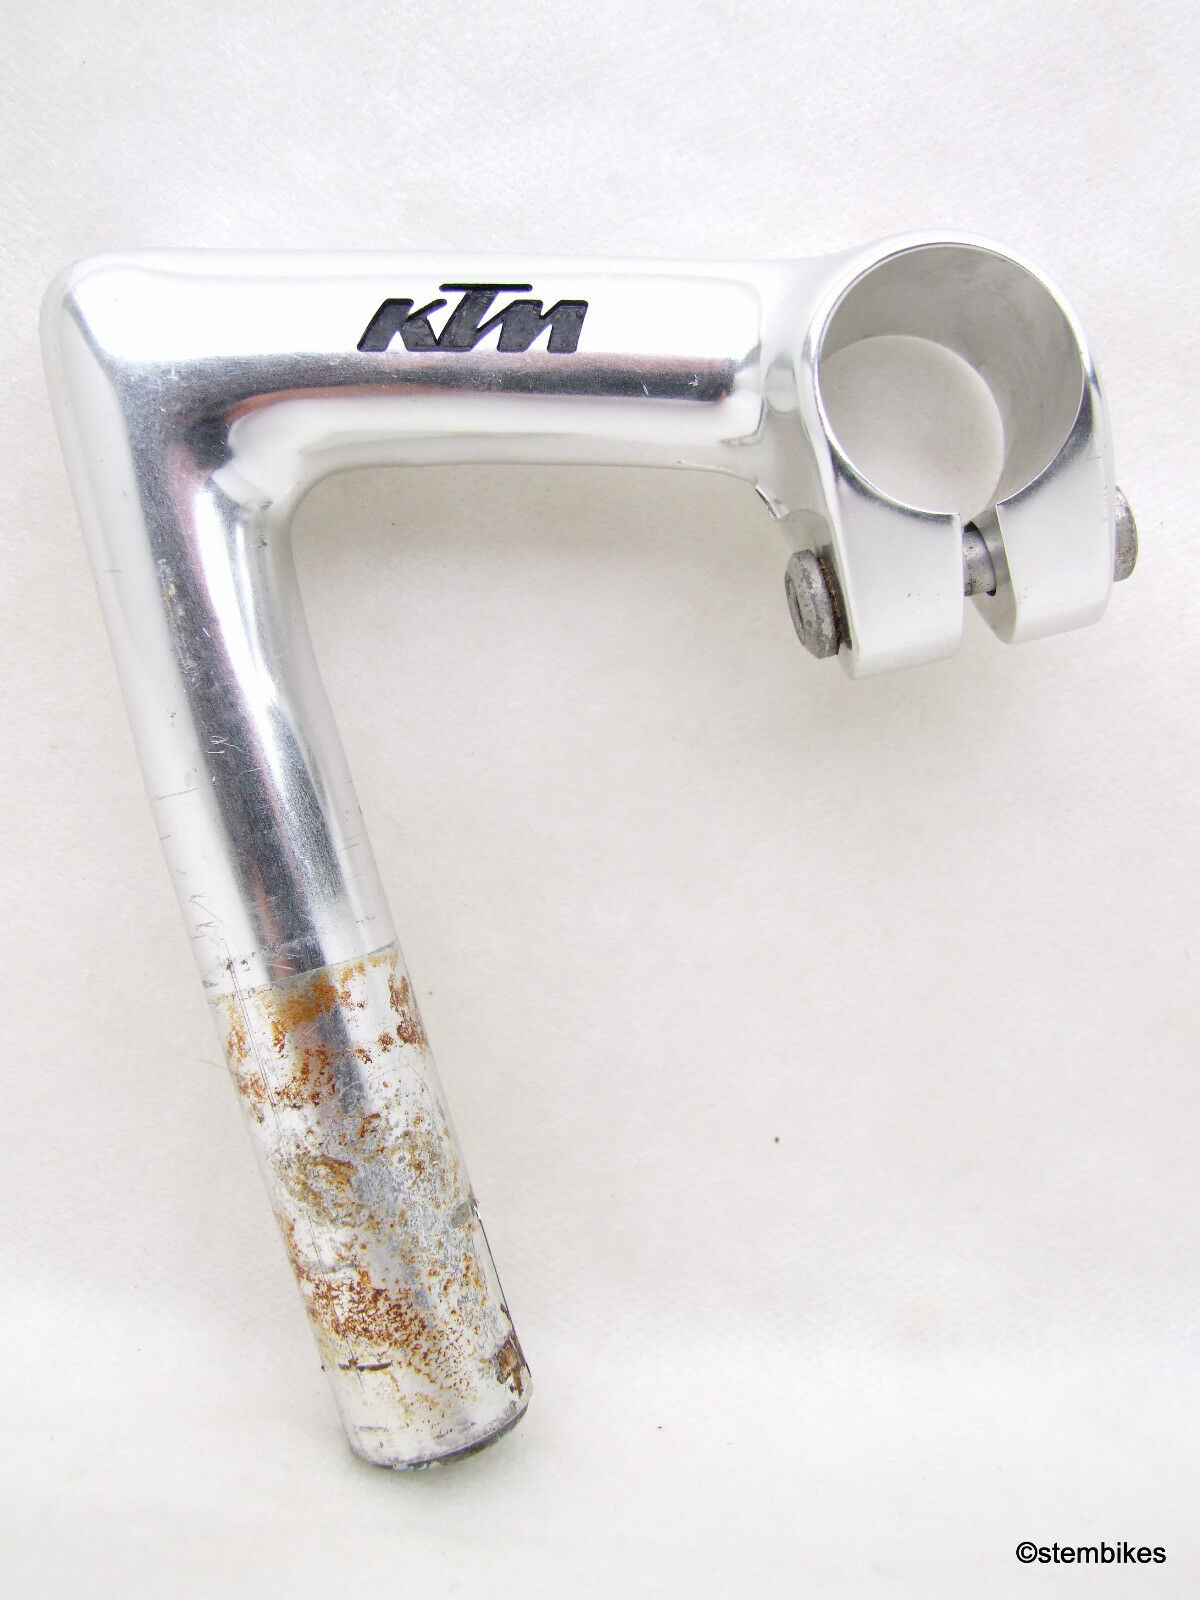 70s 3ttt RECORD  'KTM' stem 90mm   ⌀26.0mm   barely used   EXCELLENT  cost-effective